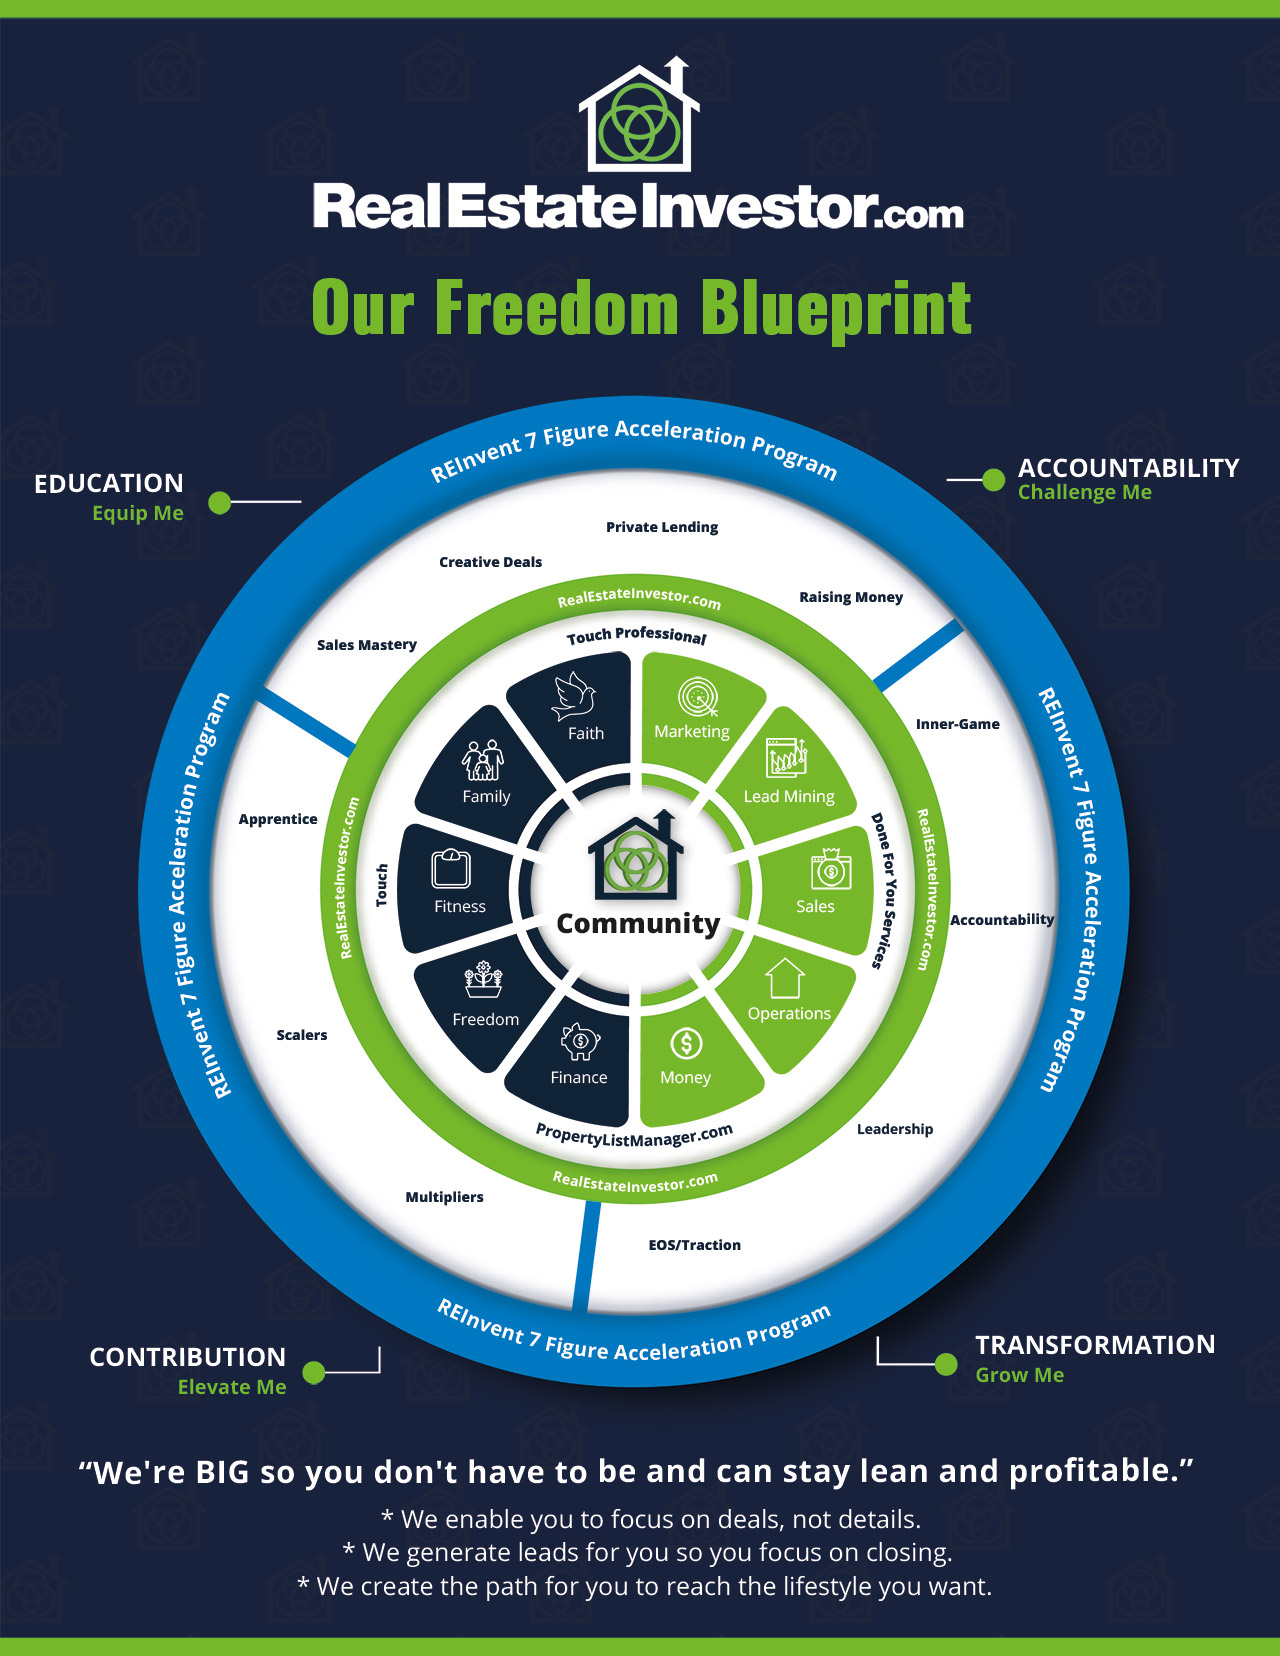 Real-Estate-Investor-Freedom-Blueprint